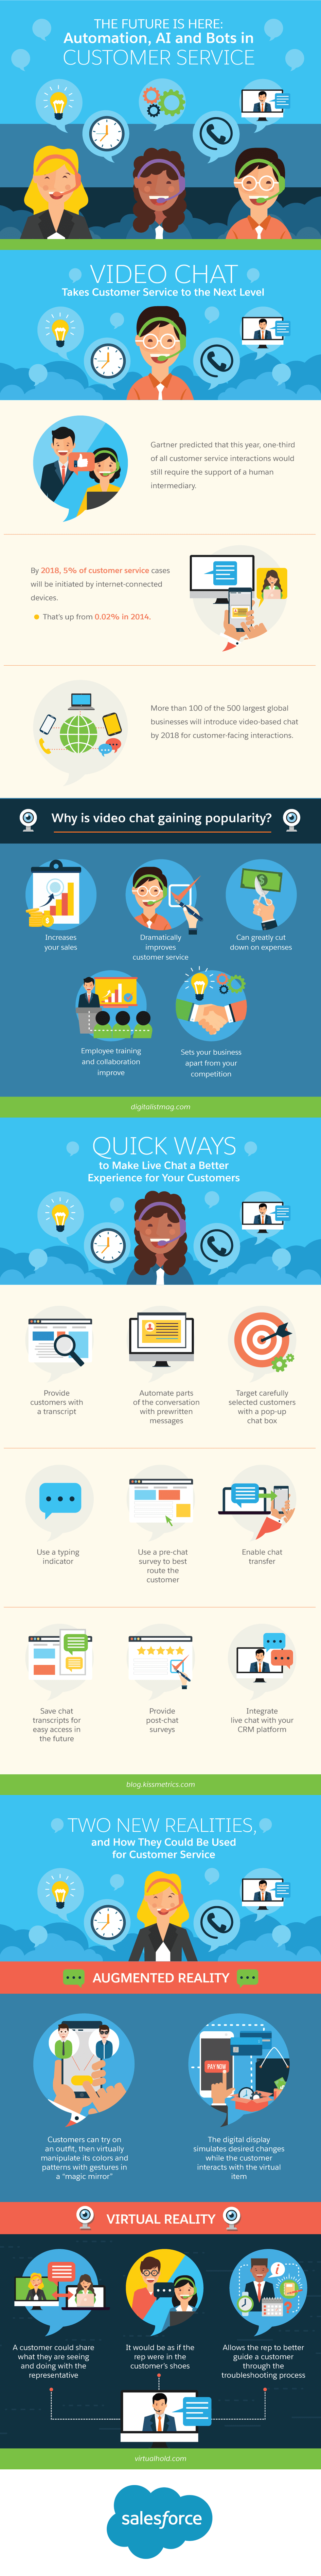 The Future is Here: Automation, AI, and Bots in Customer Service #Infographic